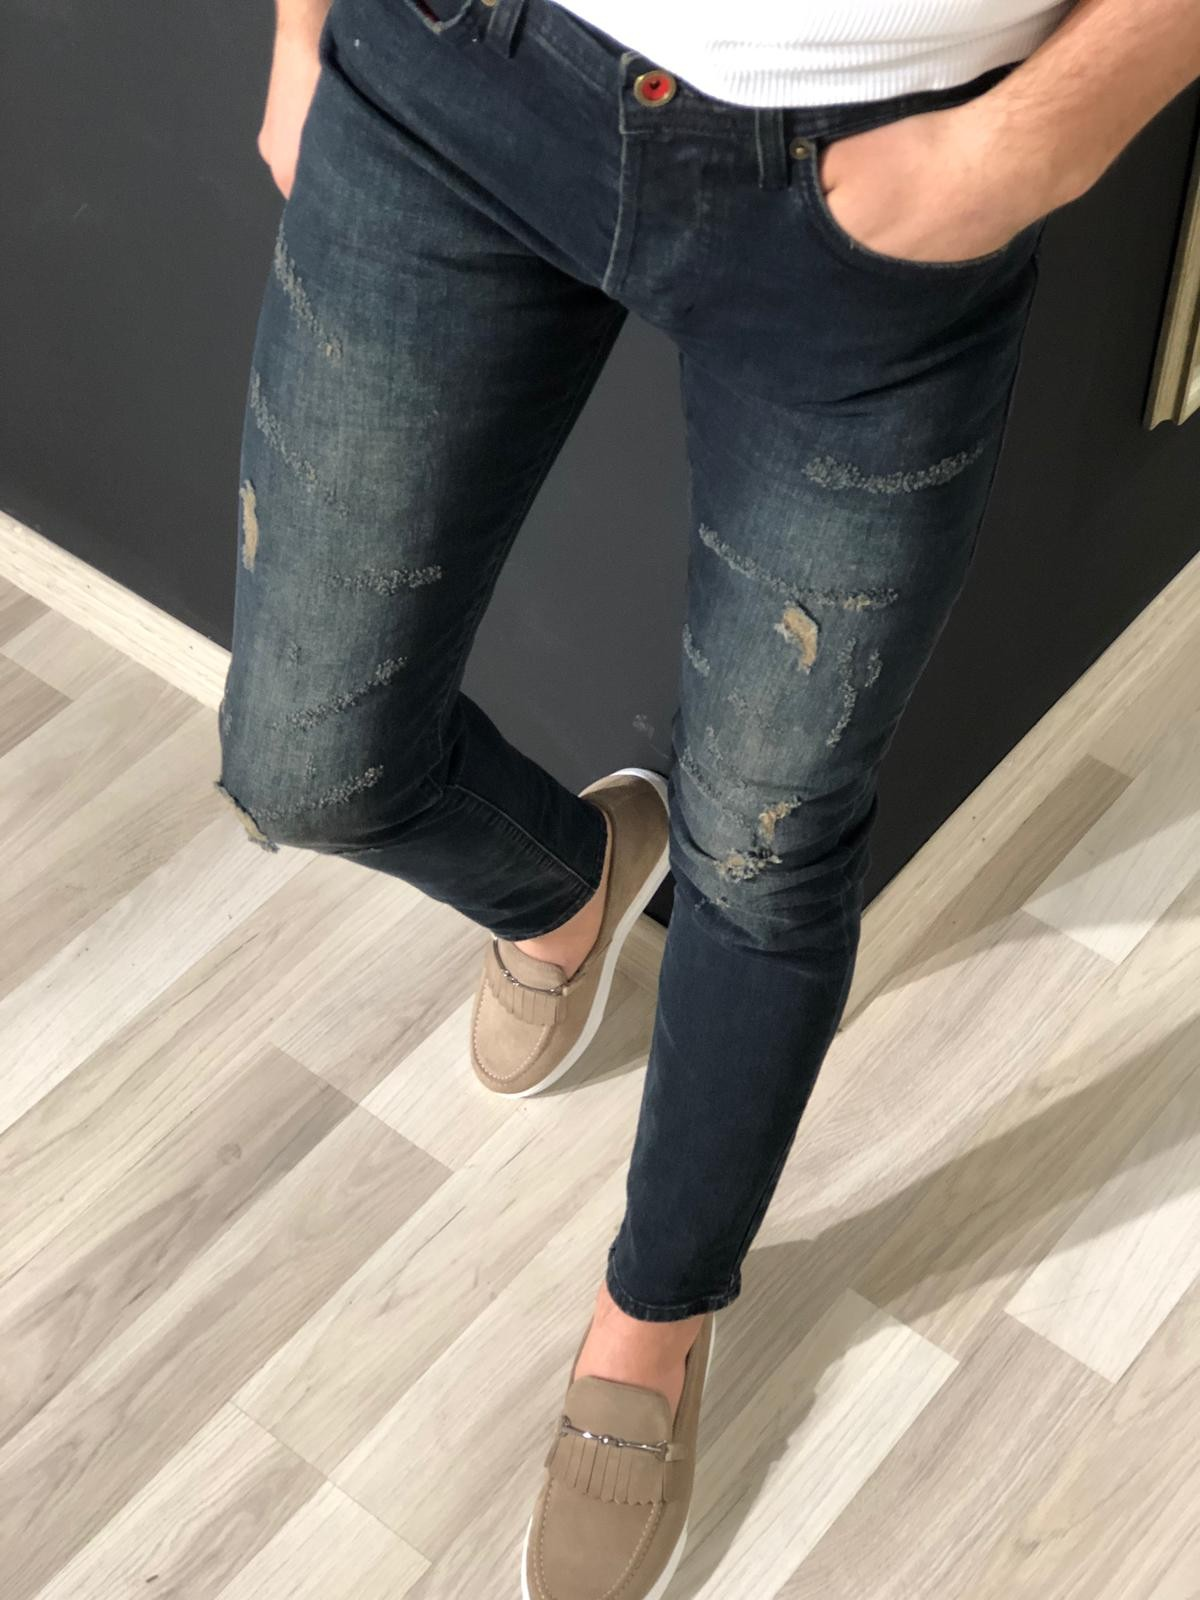 Buy Navy Blue Slim Fit Ripped Jeans at Gentwith.com with Free Shipping